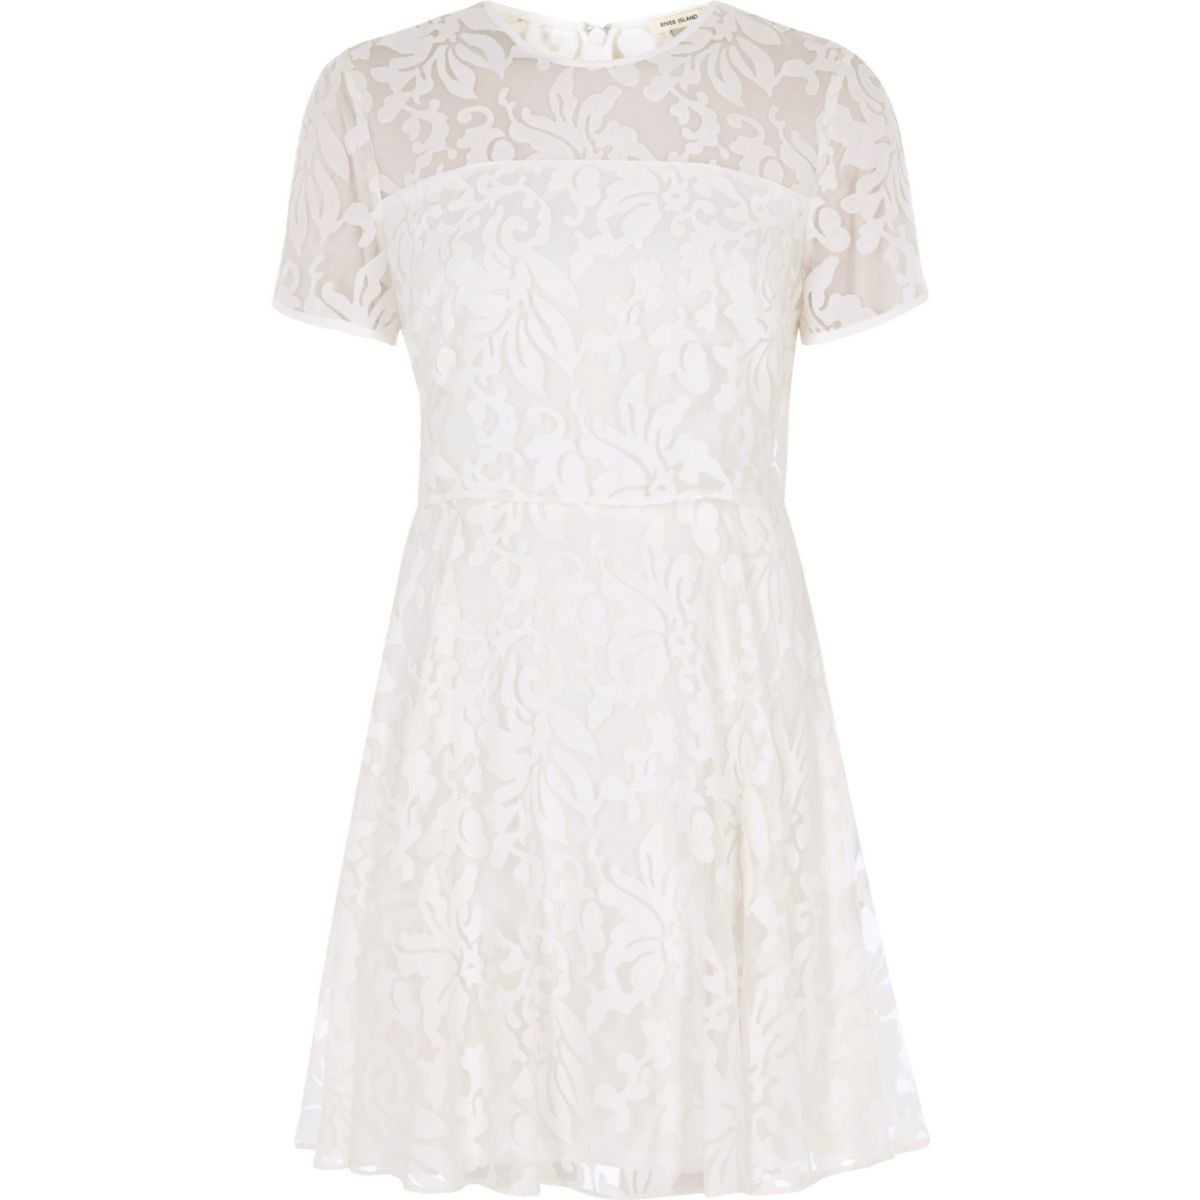 White sheer floral double layer dress